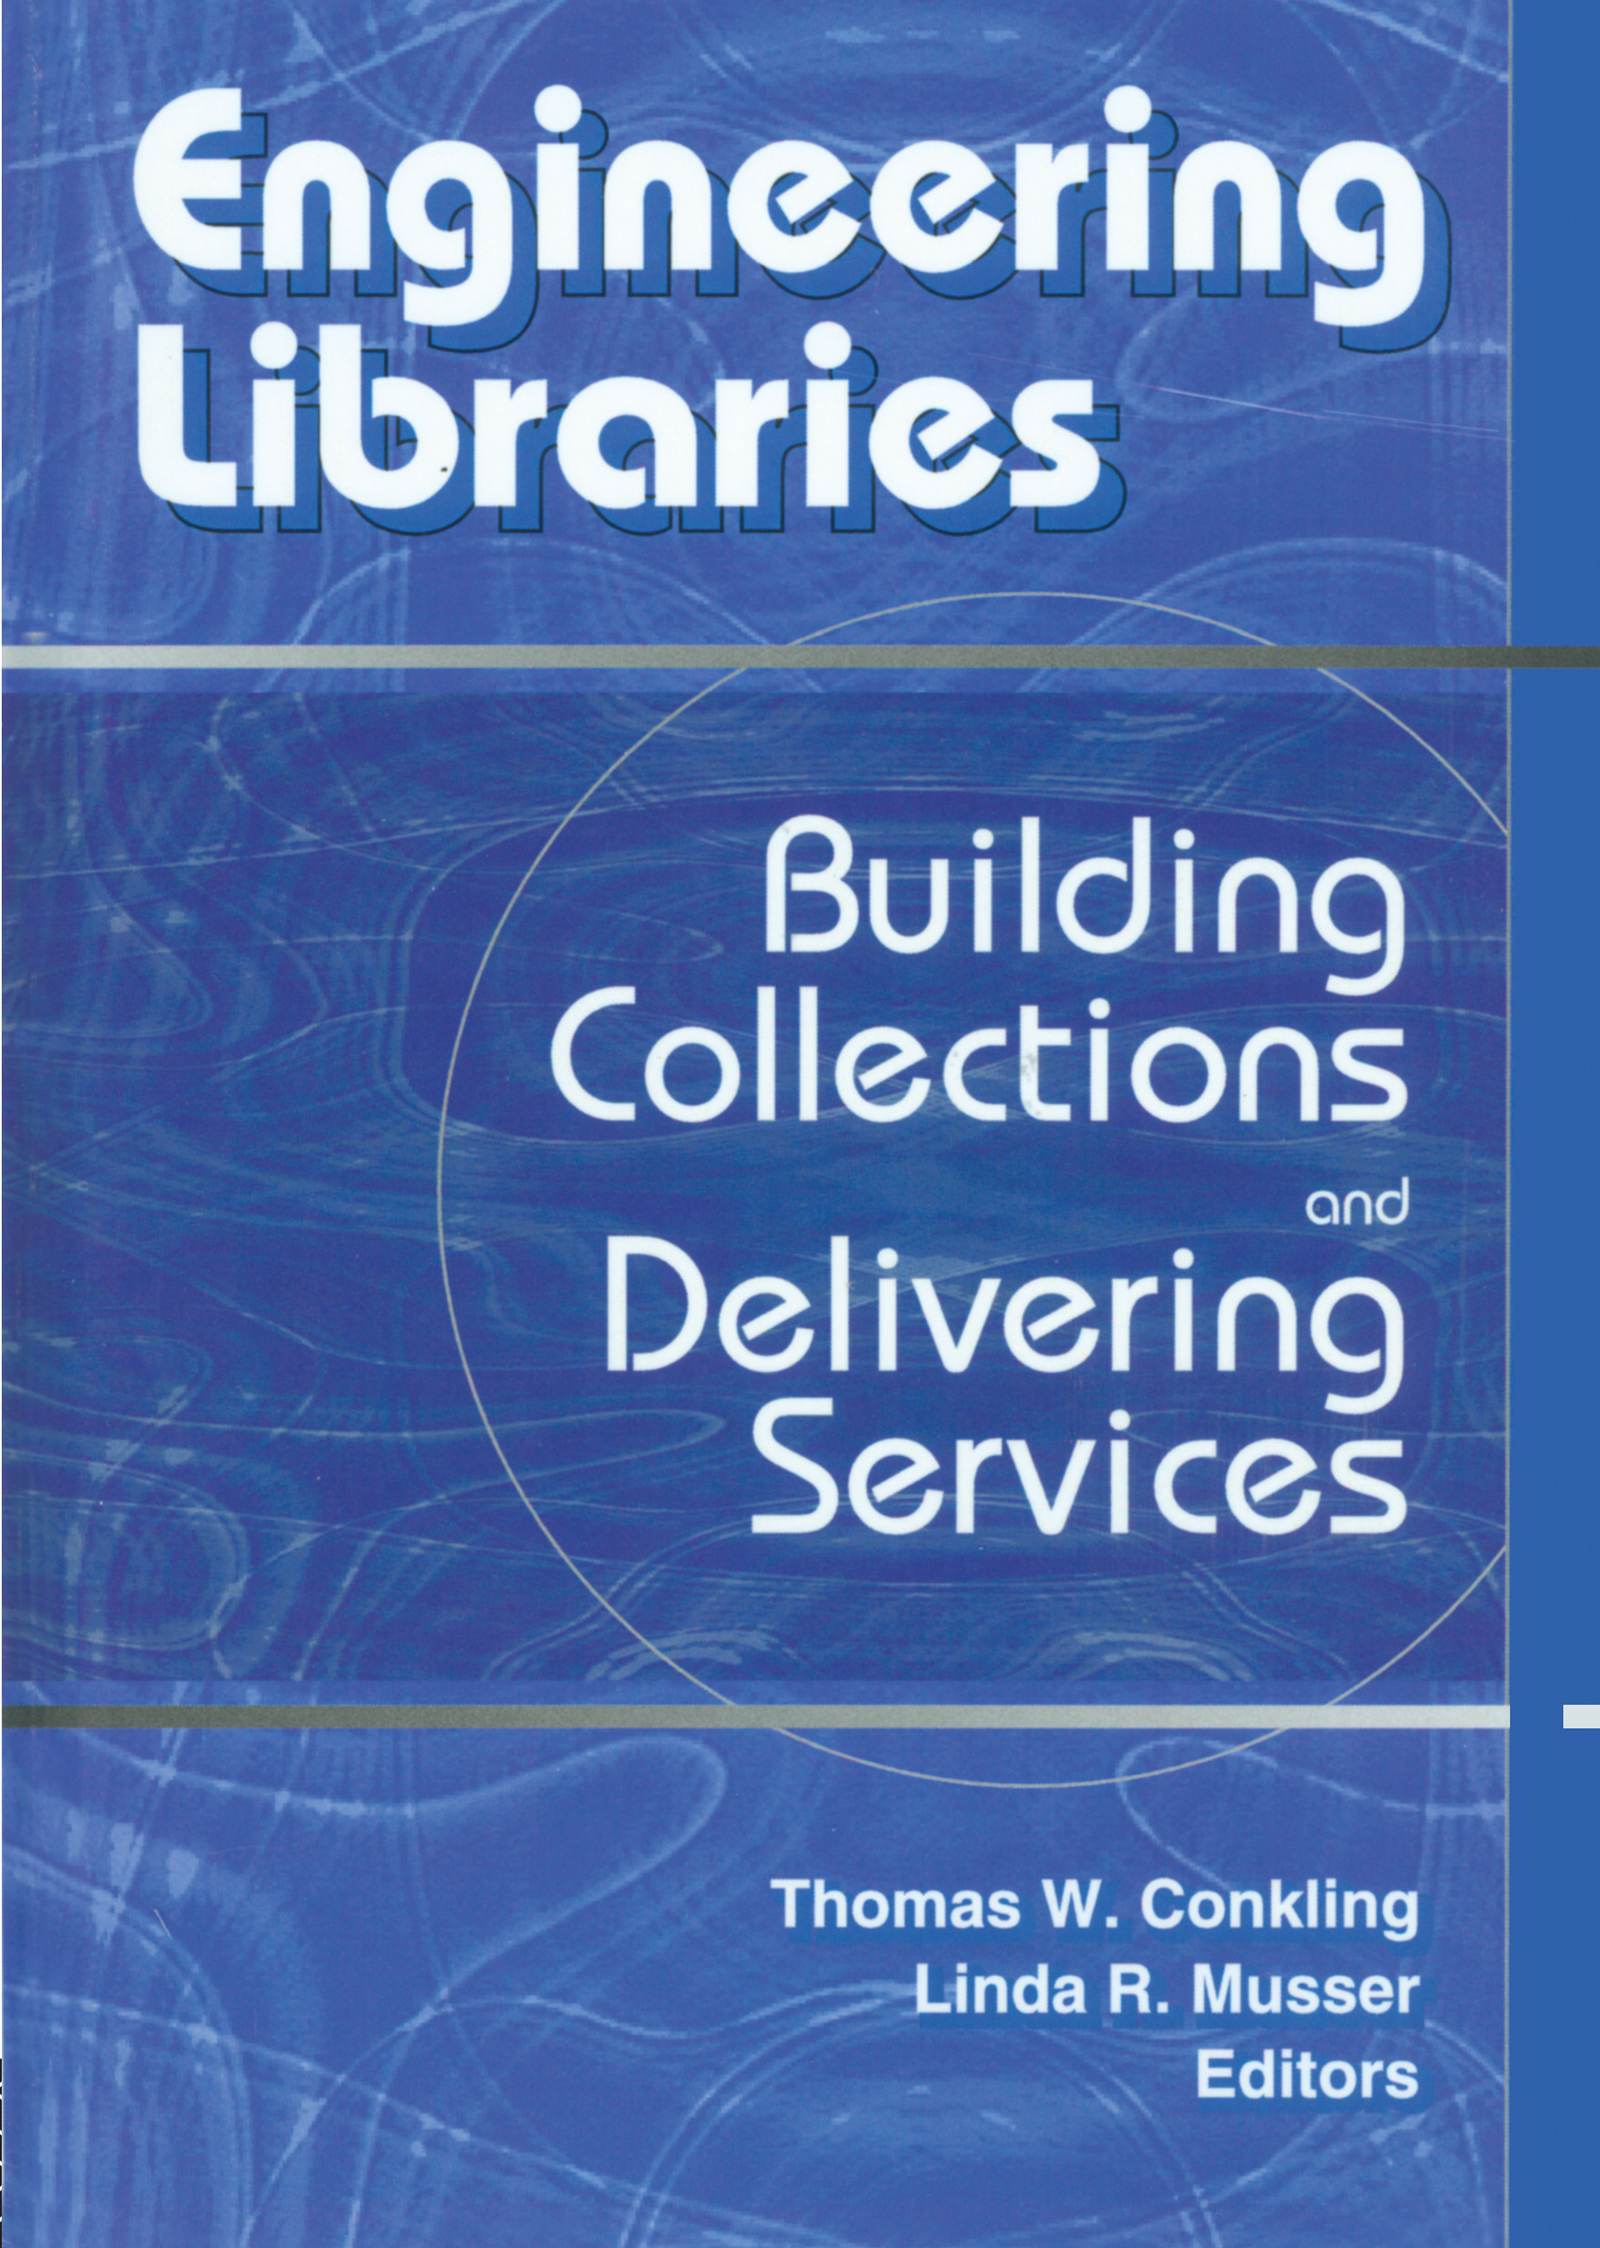 Engineering Libraries: Building Collections and Delivering Services book cover